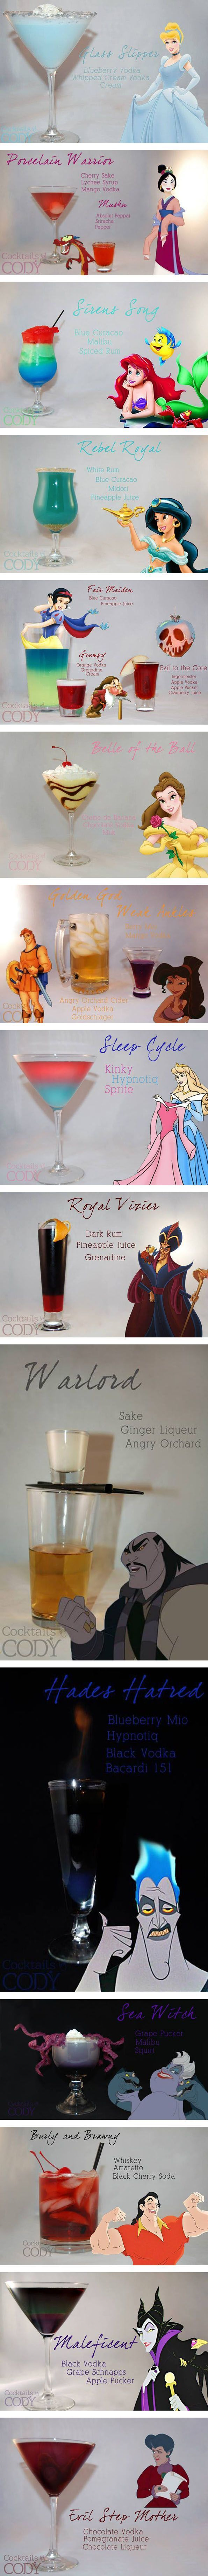 Disney Princess-Themed Cocktails